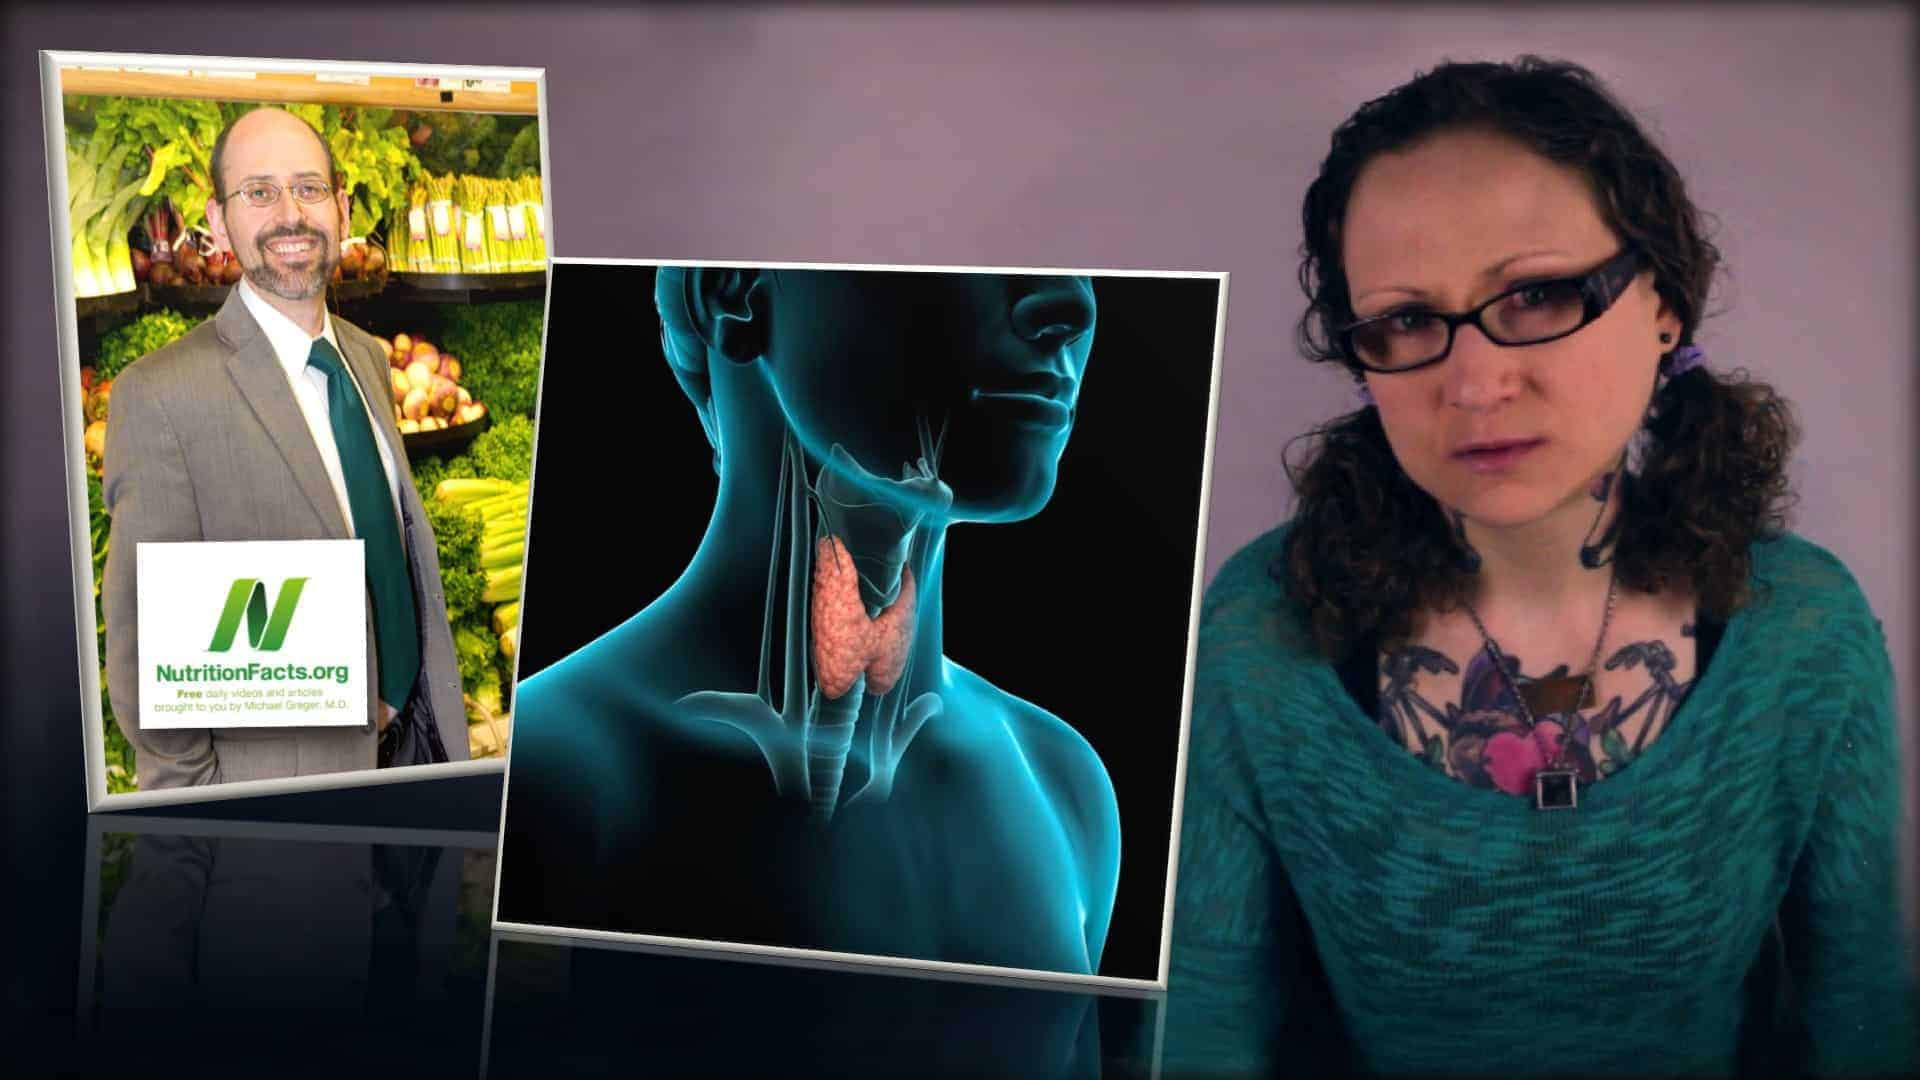 Dr. Greger of NutritionFacts.org is seen as an inset photograph on the left. In the center is an image of a translucent human in blue with the thyroid gland highlighted in pink. On the right is an image of Emily Moran Barwick of Bite Size Vegan.